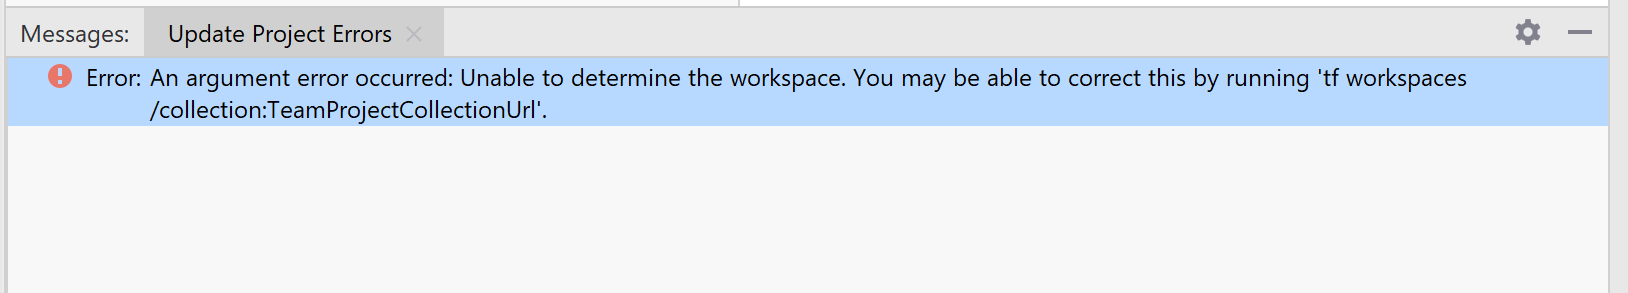 Unable to determine the workspace  - Error after update to